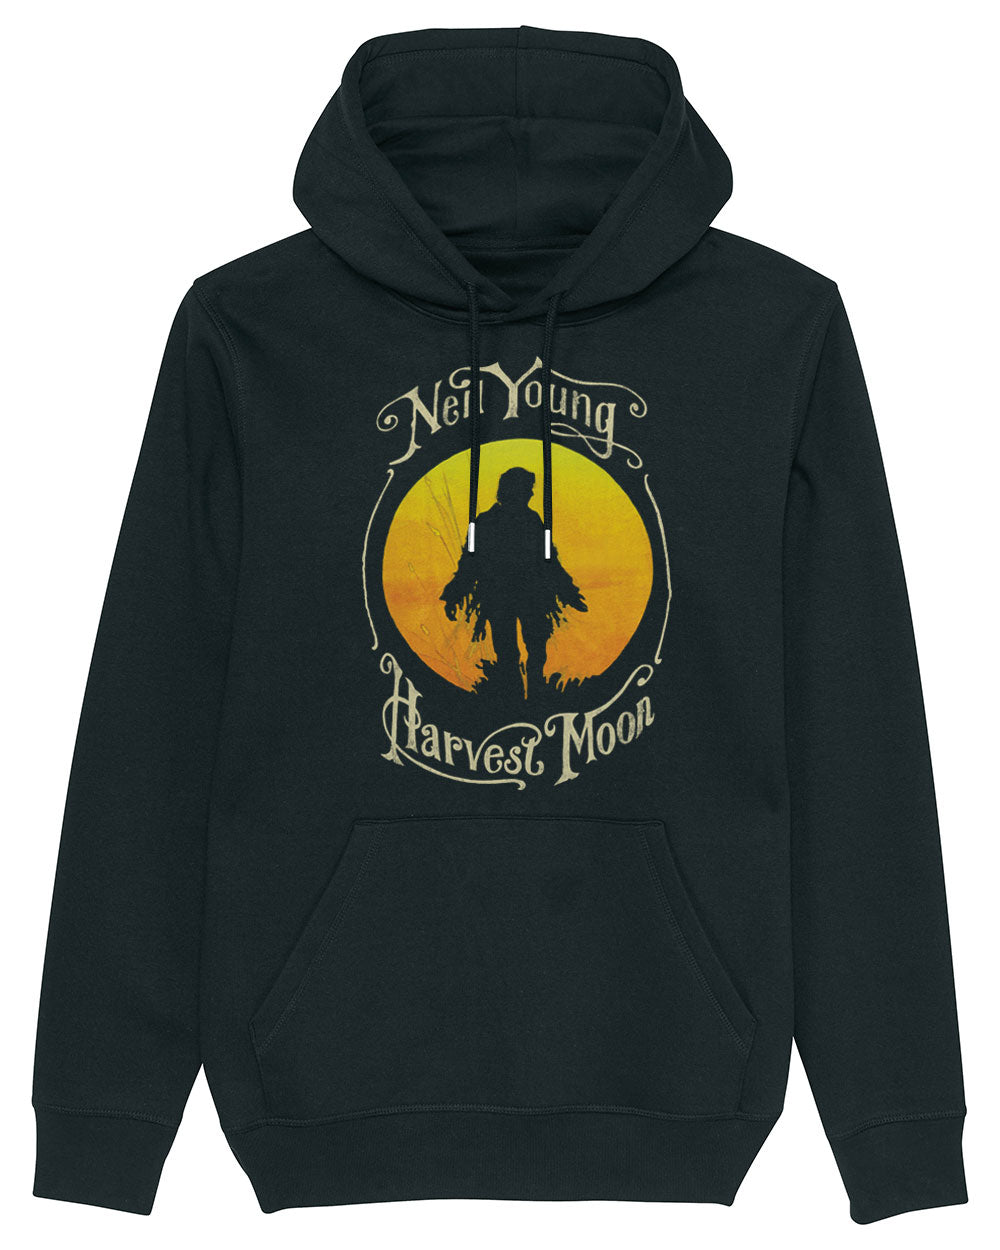 Neil Young Hoodie - Neil Young Harvest Moon Hoodie